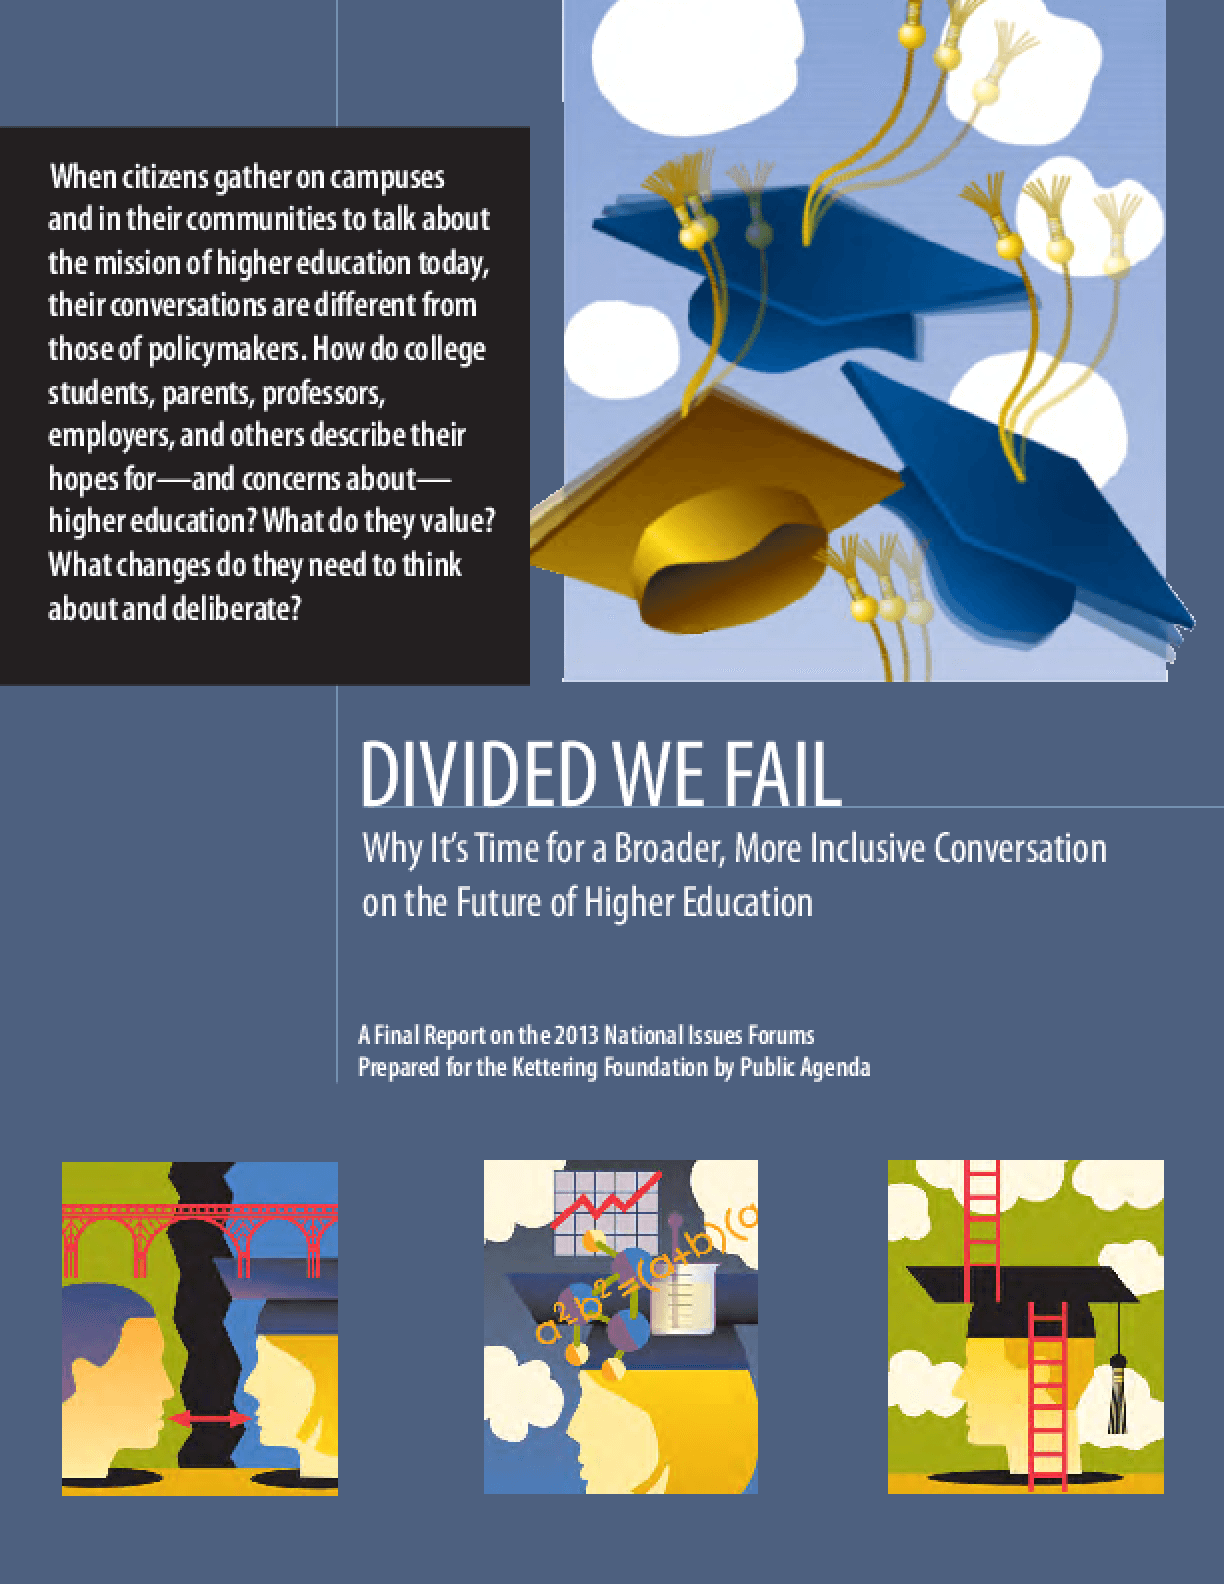 Divided We Fail: Why It's Time for a Broader, More Inclusive Conversation on the Future of Higher Education